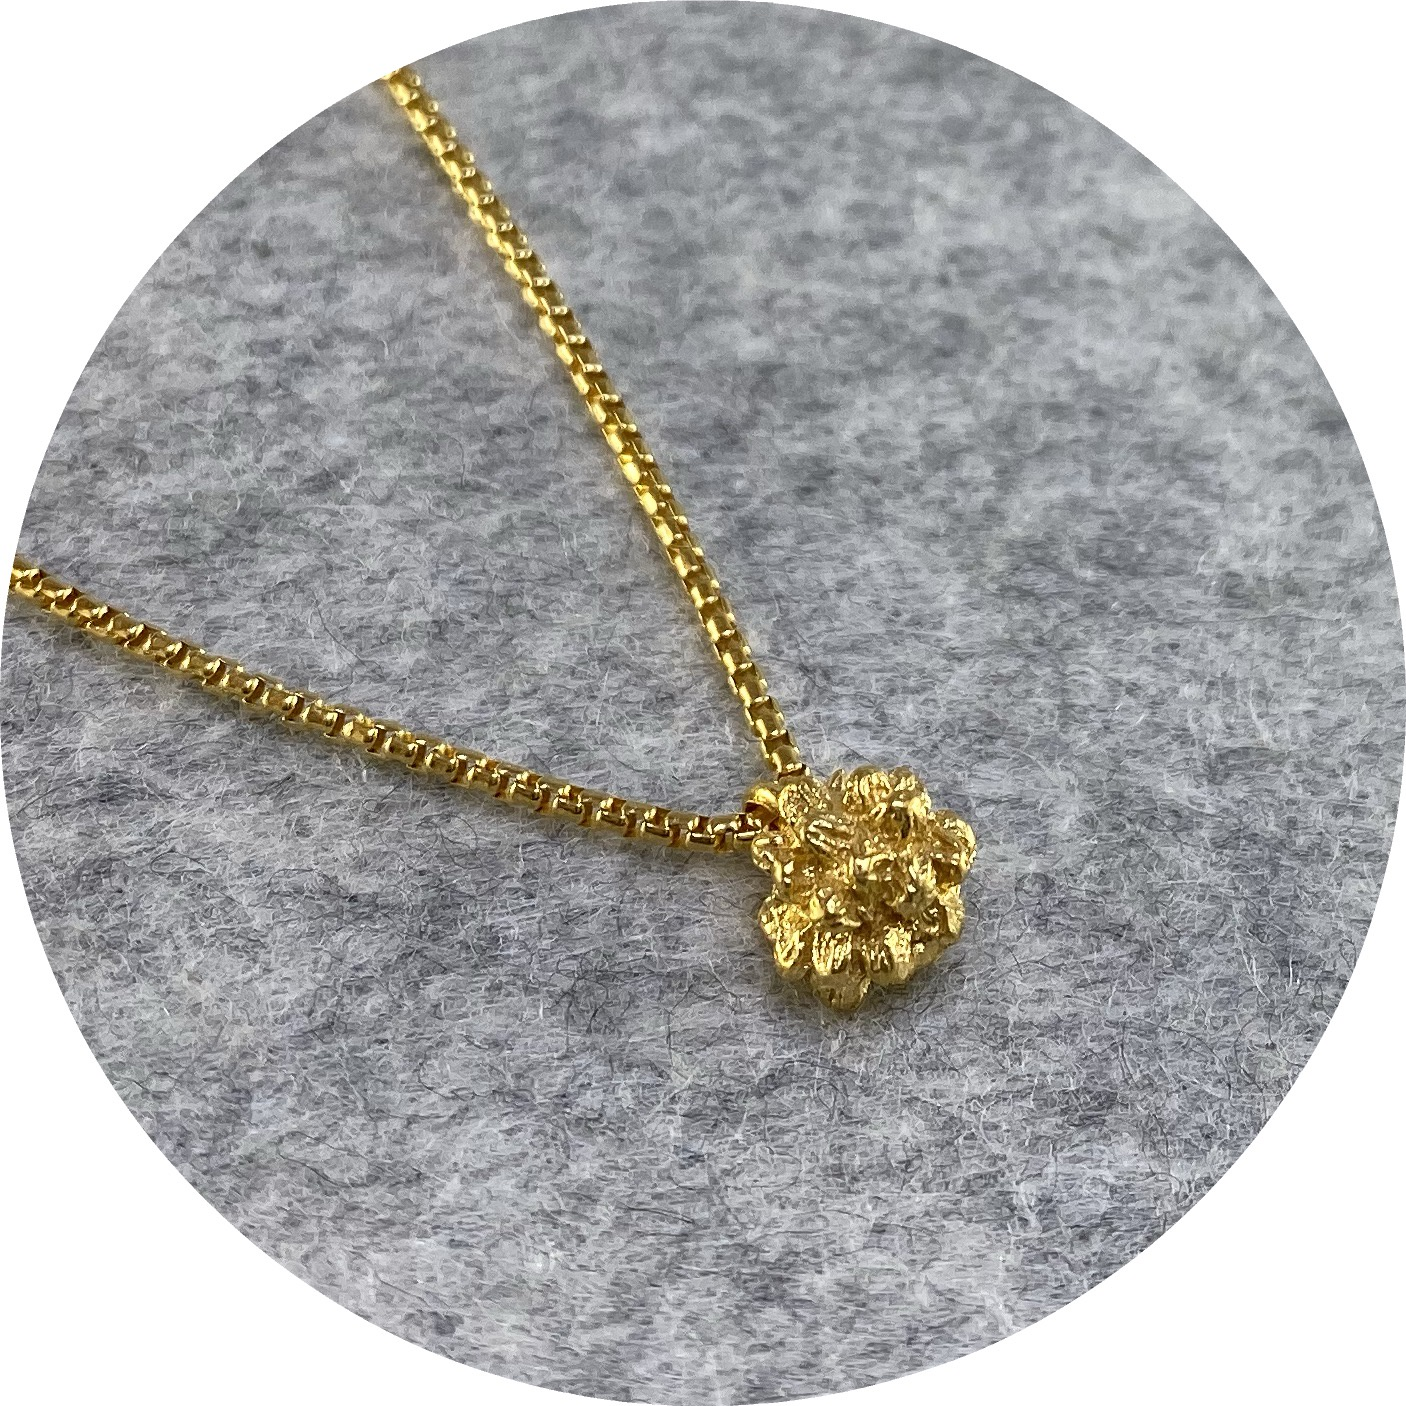 Manuela Igreja - 'Beehive Necklace Thicker Chain', 925 silver, yellow gold plate